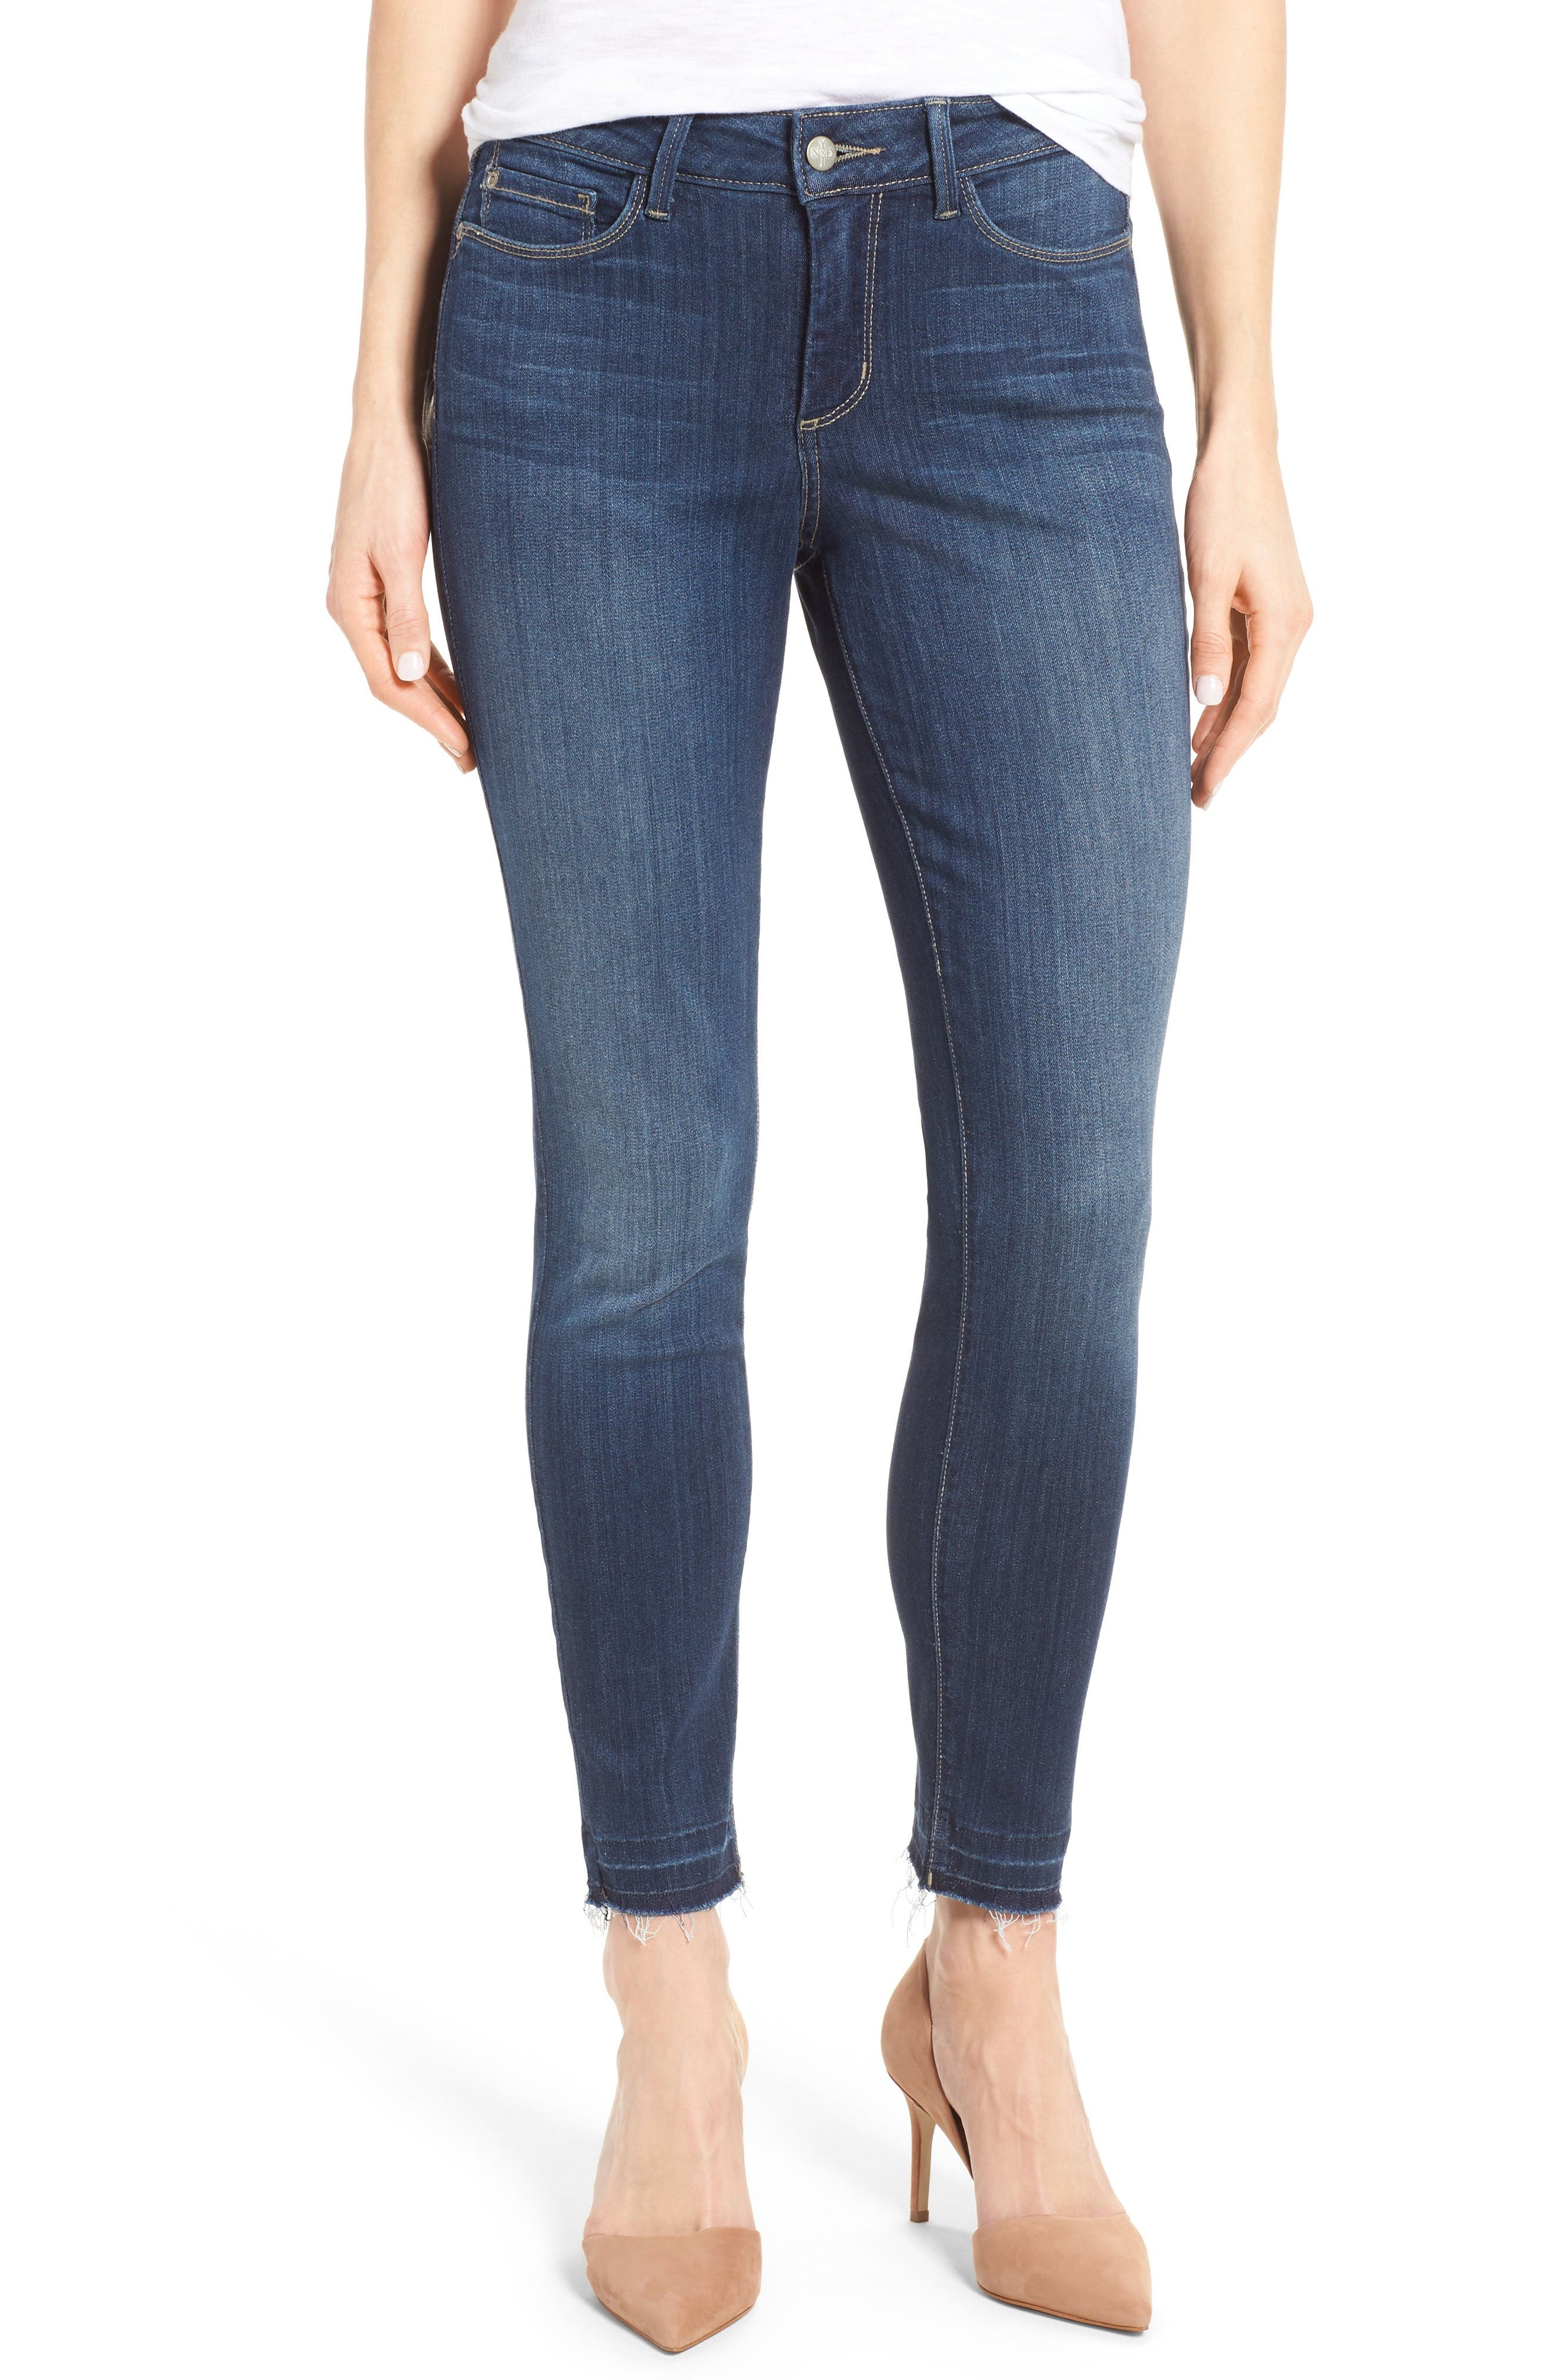 Ami Release Hem Stretch Skinny Jeans,                         Main,                         color, 428